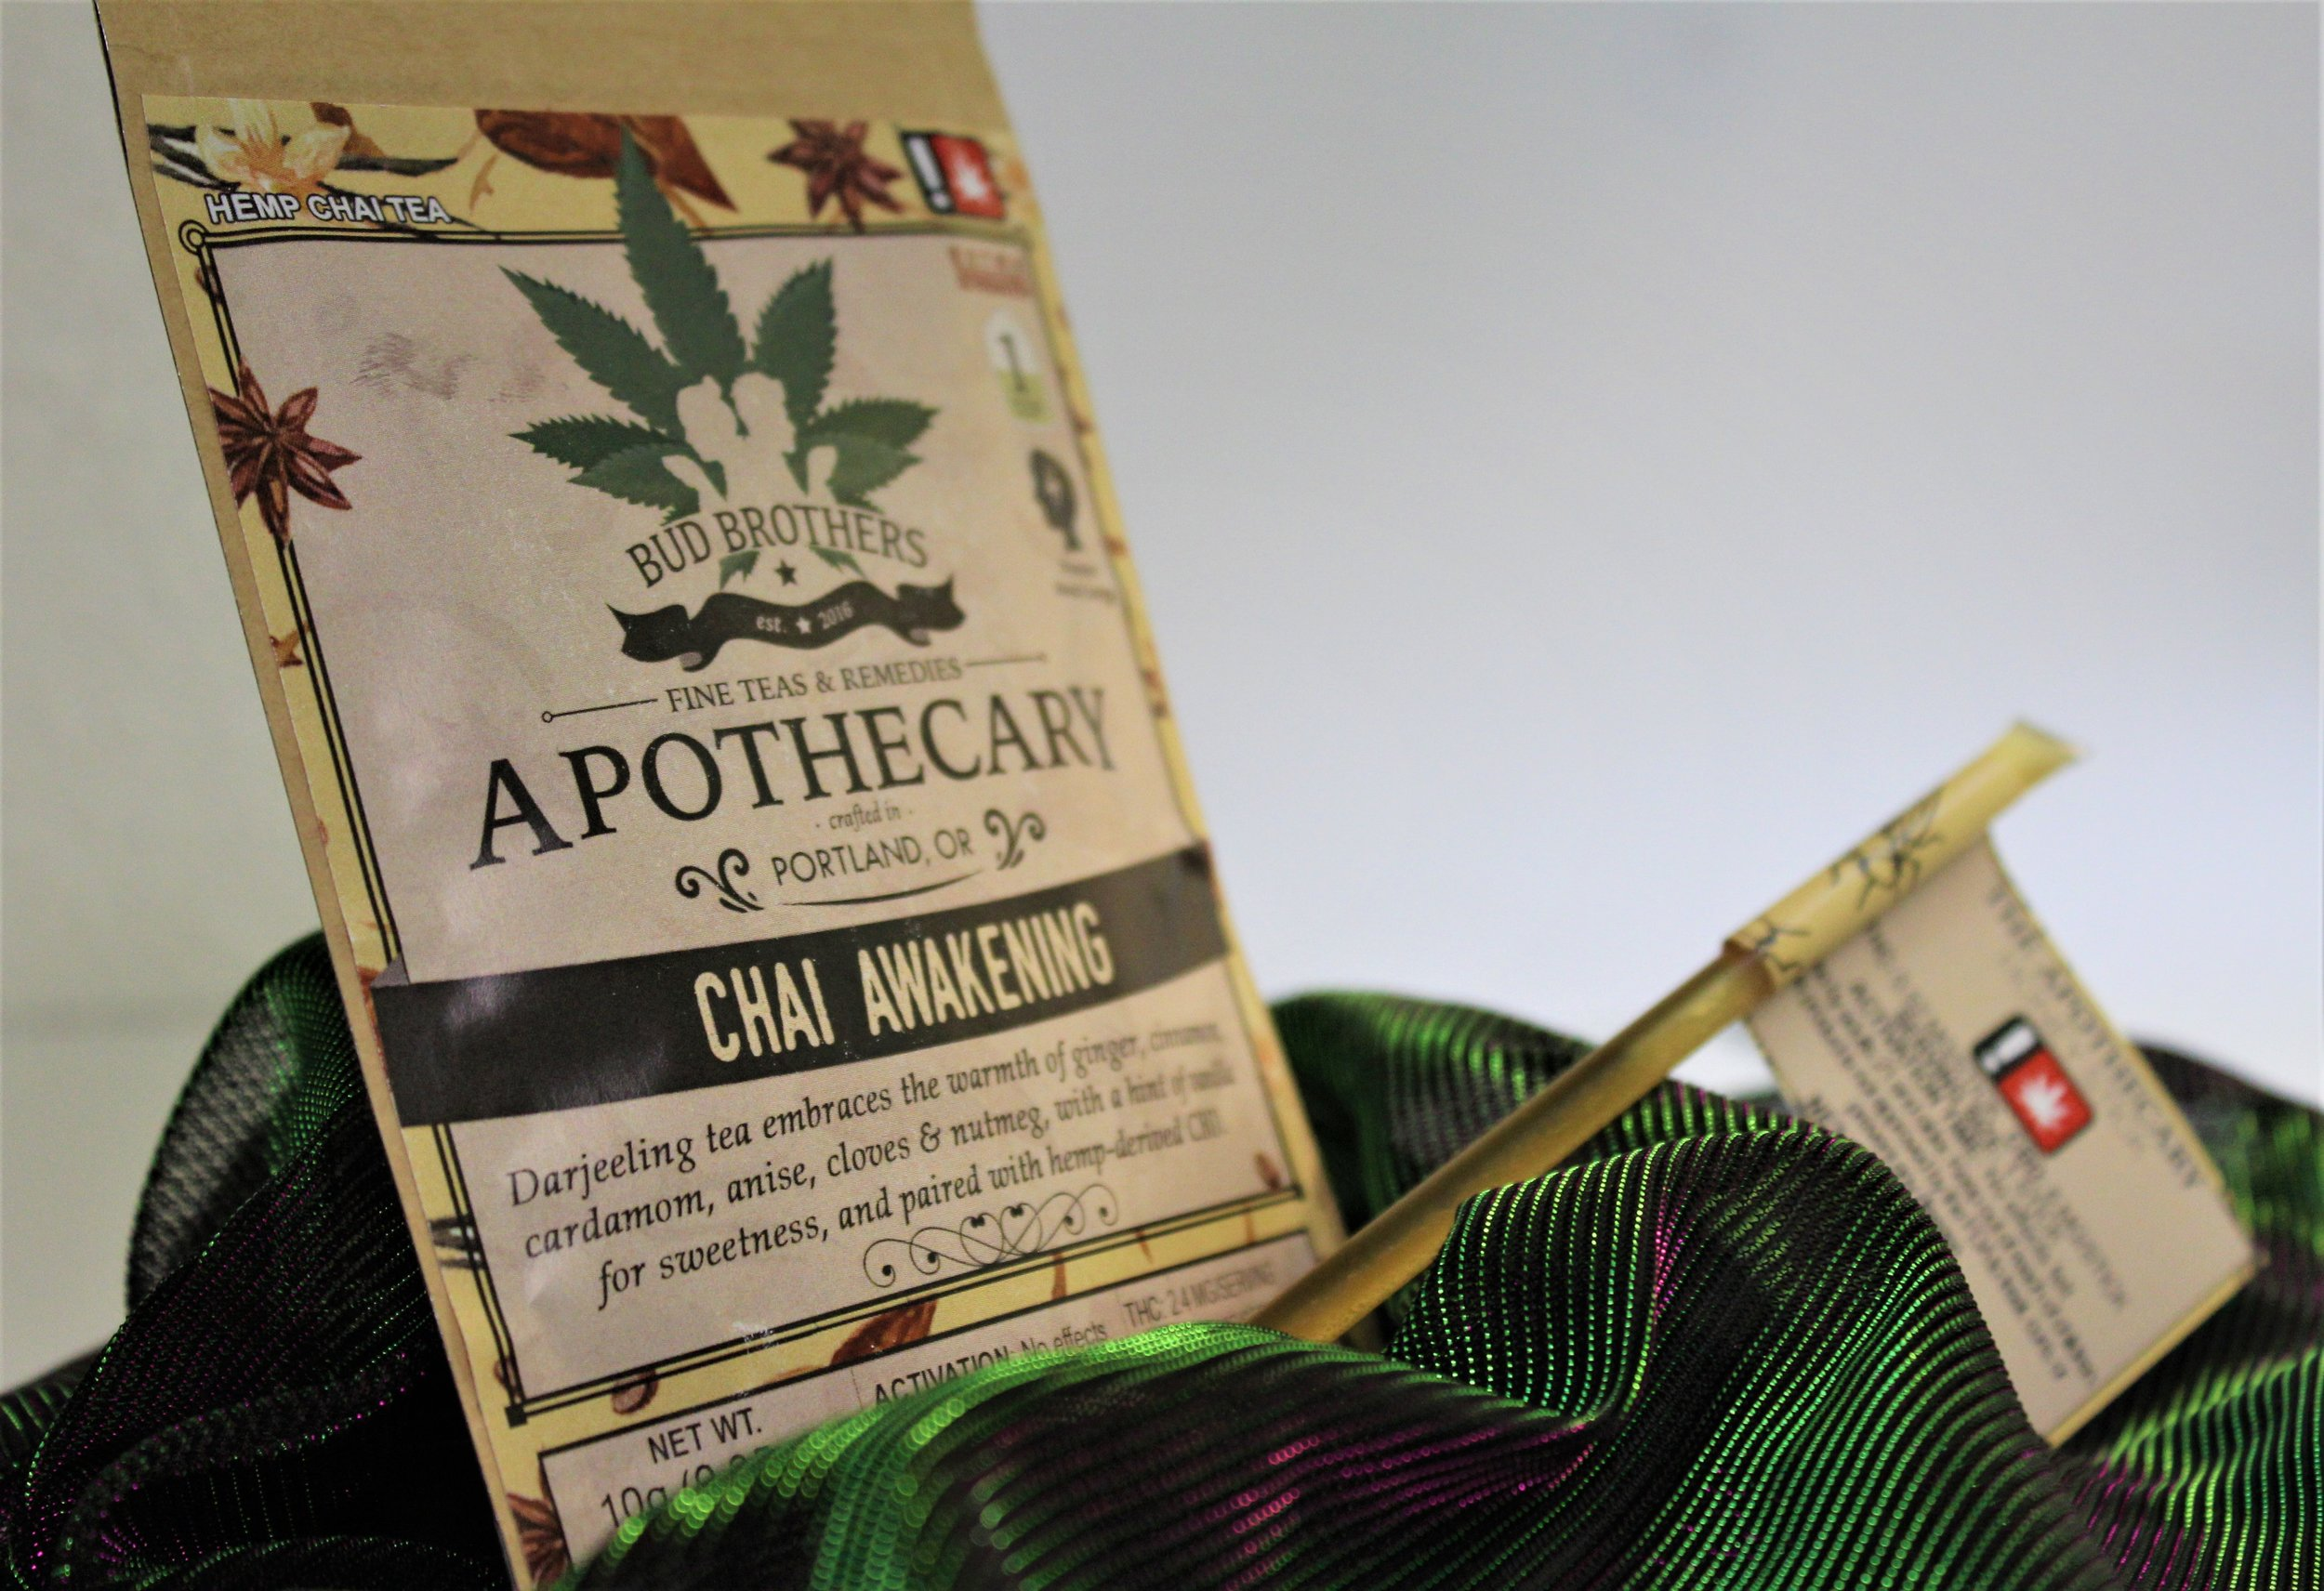 Chai Awakening Tea and Honey Stick from Bud Brother's Apothecary